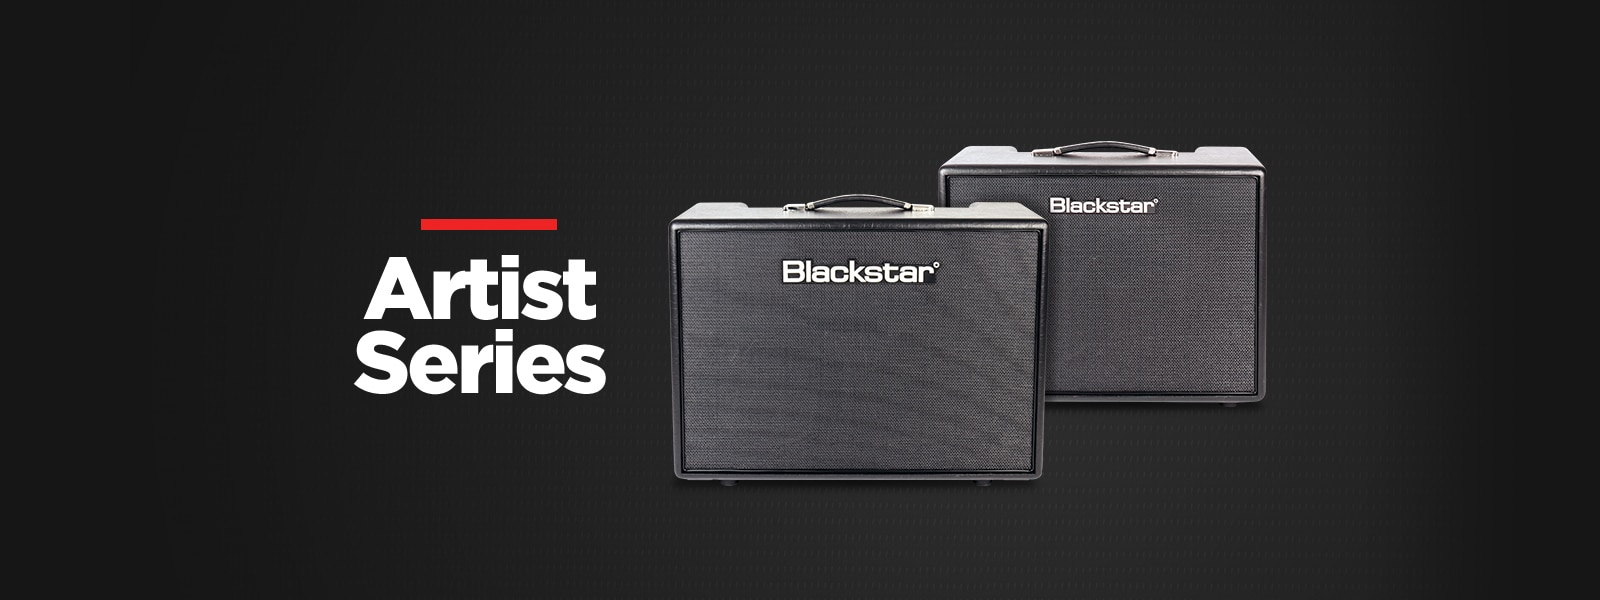 Blackstar Artist Series Amplifiers